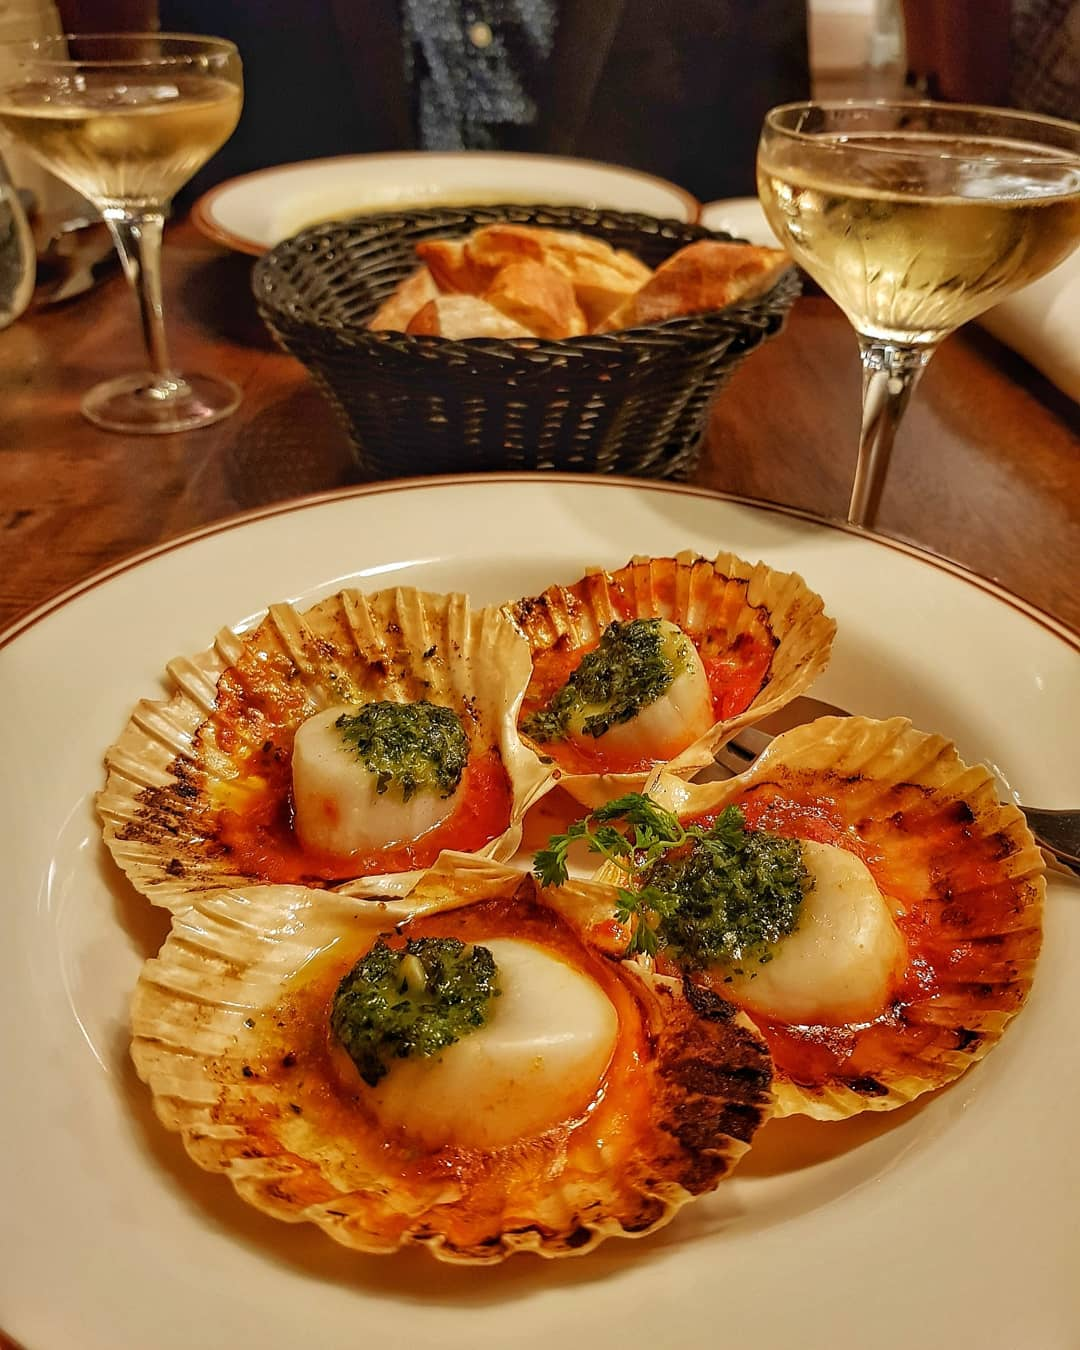 Image Credit: DiscoverBrisbane Instagram. Scallops from La Cache a Vin.